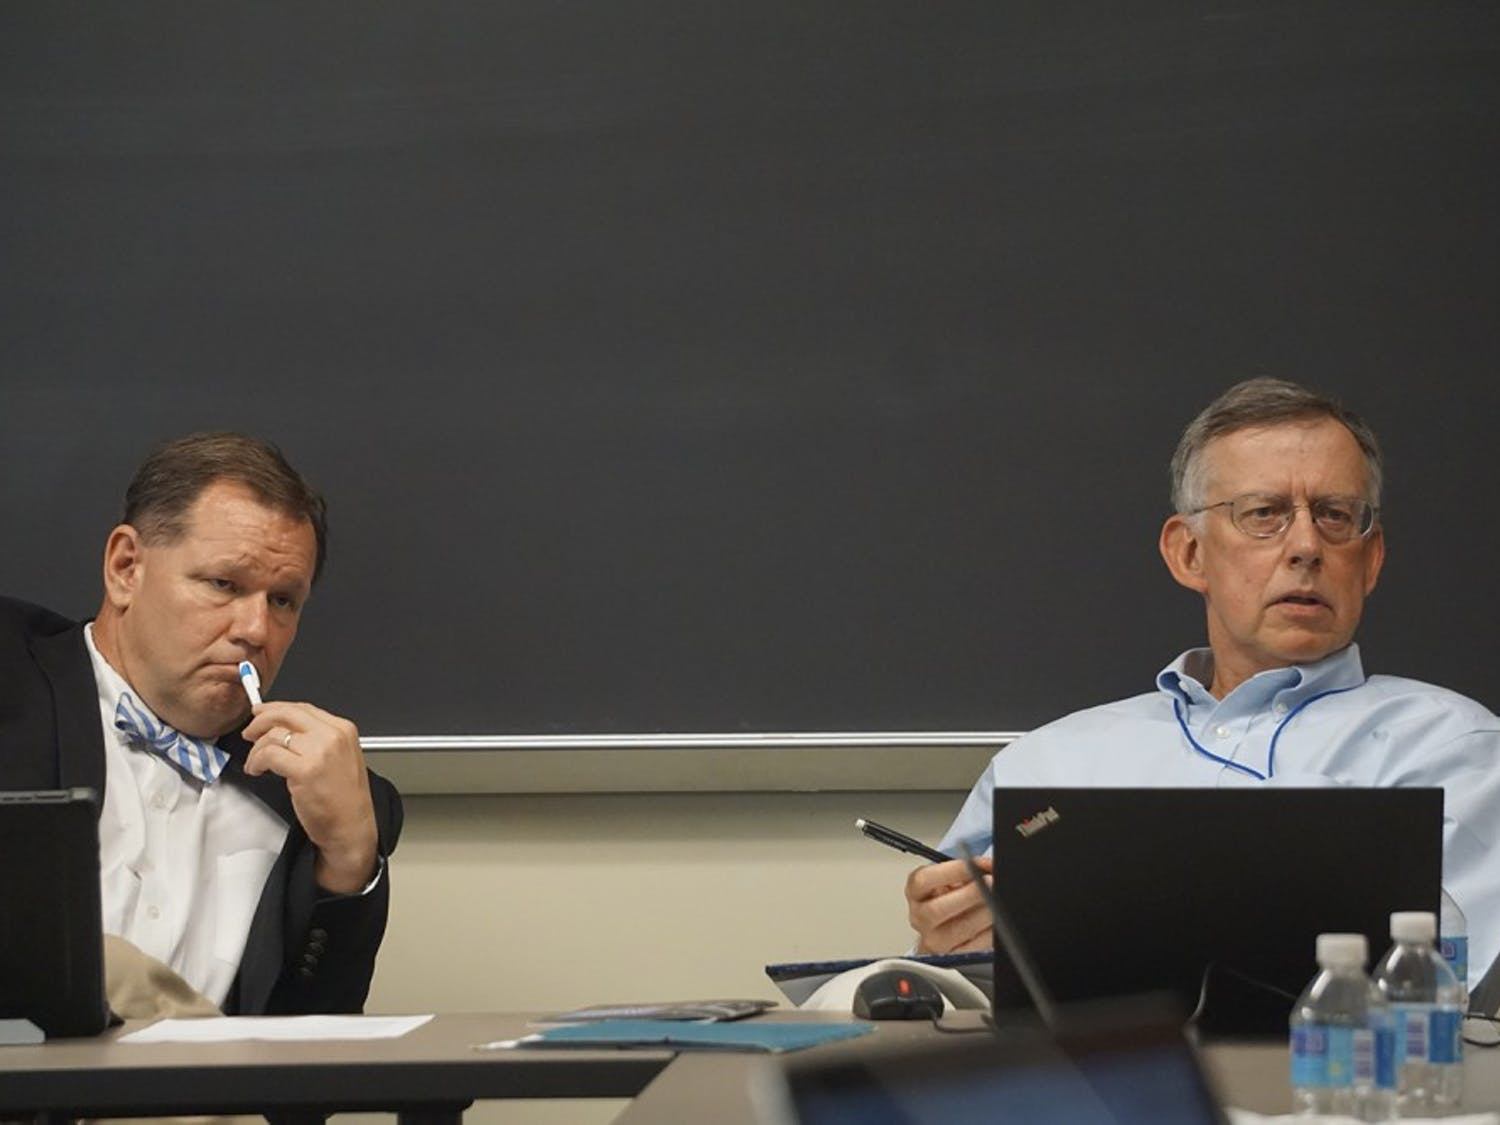 Chair of the Faculty Bruce Cairns (left) and the new secretary of the faculty, Vincas Steponaitis (right), discuss how to best utilize the Faculty Executive Committee's meetings on Monday afternoon.